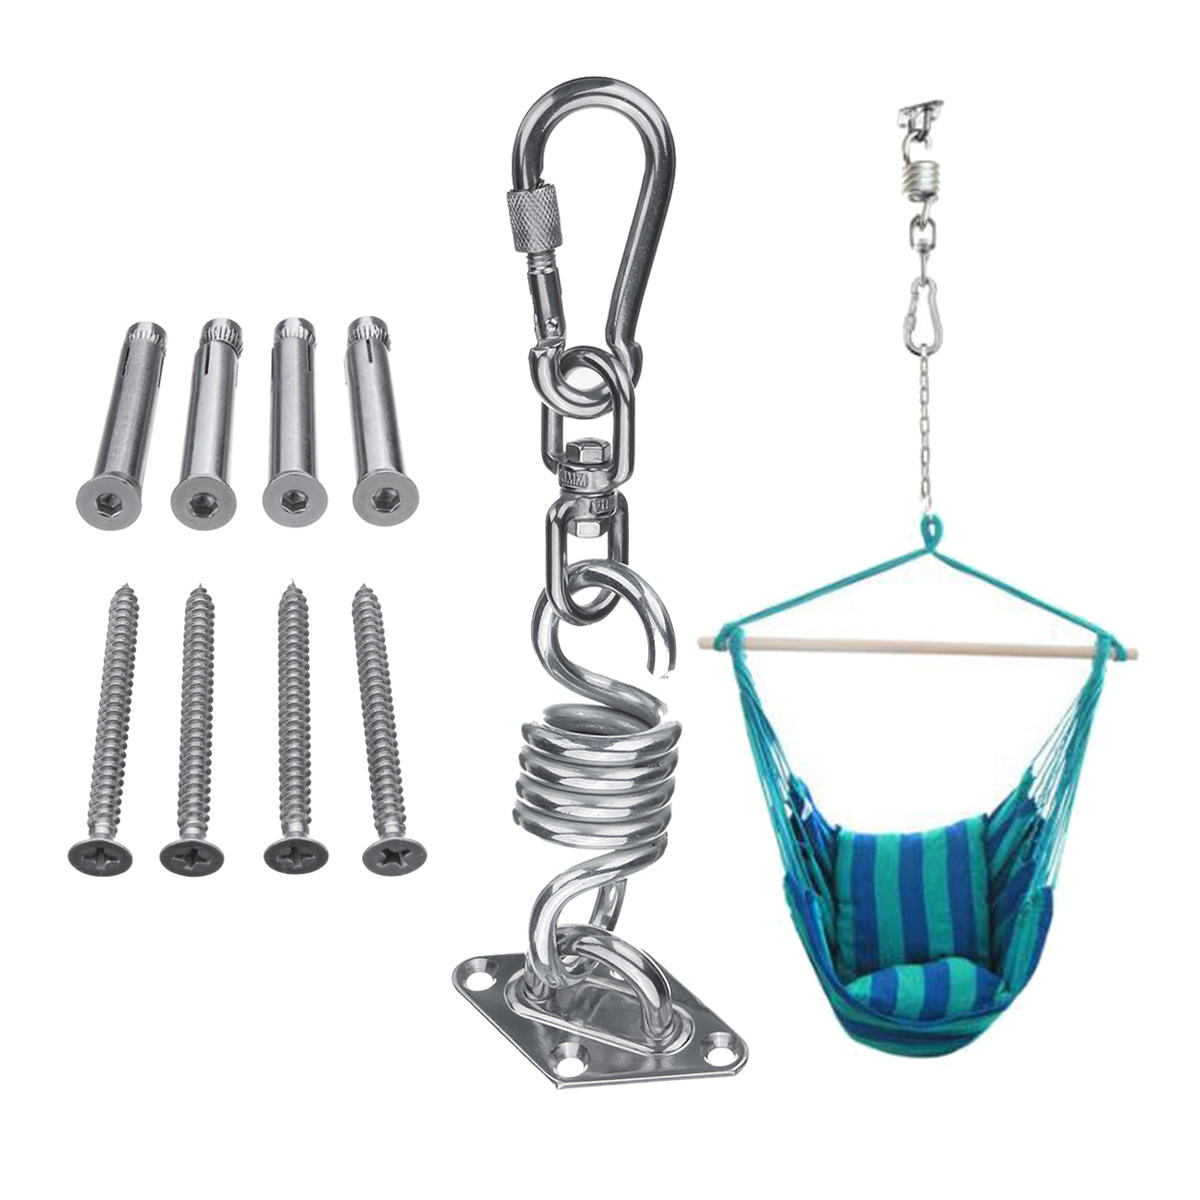 Stainless Steel Hammock Chair Hanging Kit Ceiling Mount Spring